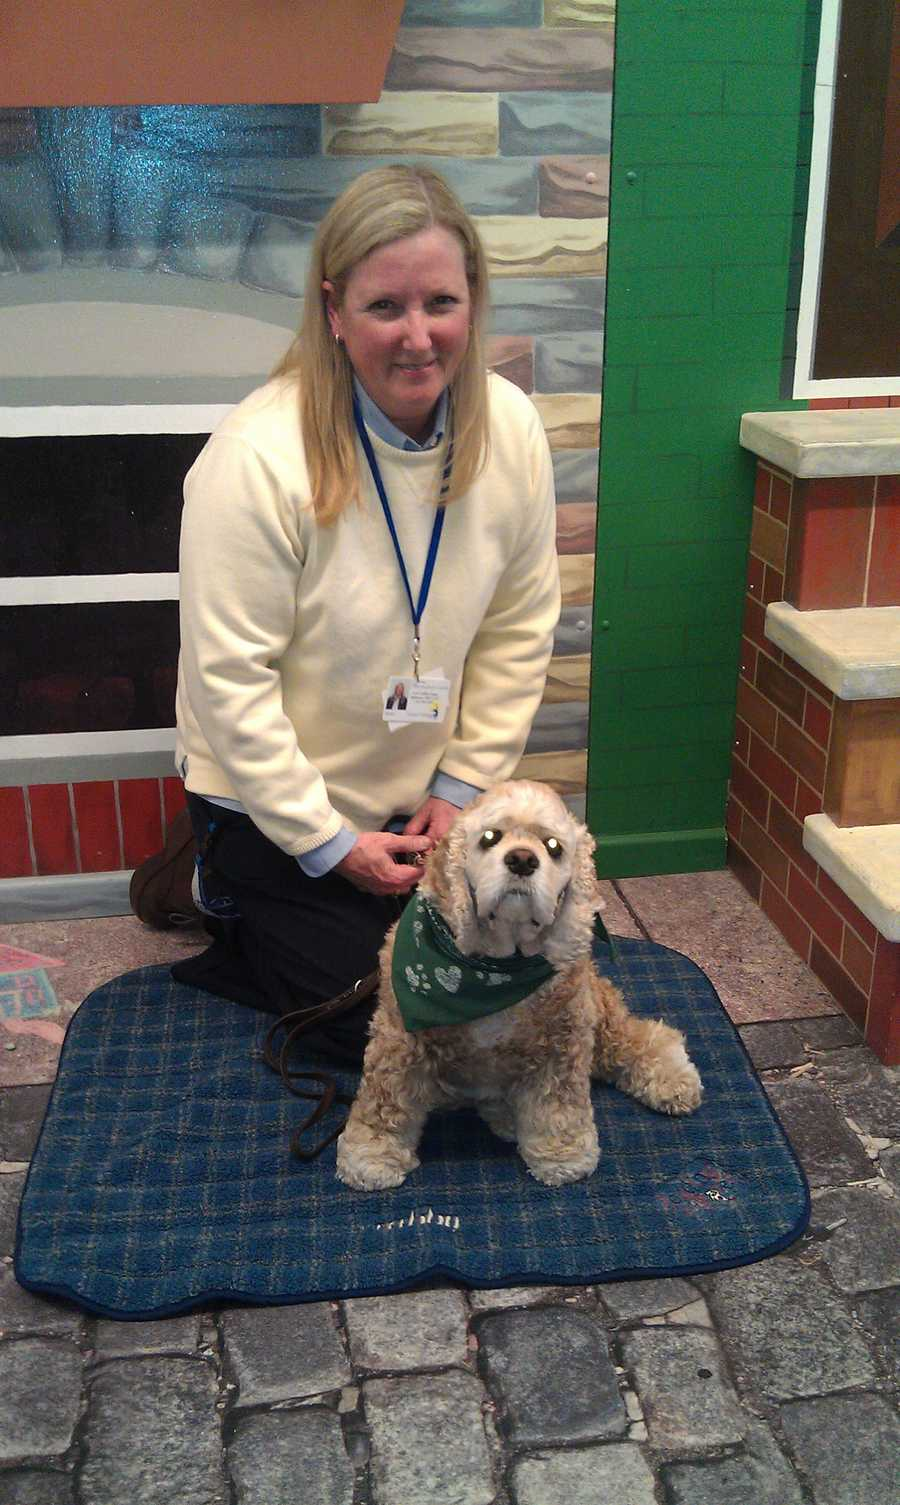 About three times a week, she joins her handler, Children's Guild clinical director Blake Kaiser-Mohondro, at the school, which serves kids who are difficult to educate due to autism, multiple disabilities and trauma.Read the story.